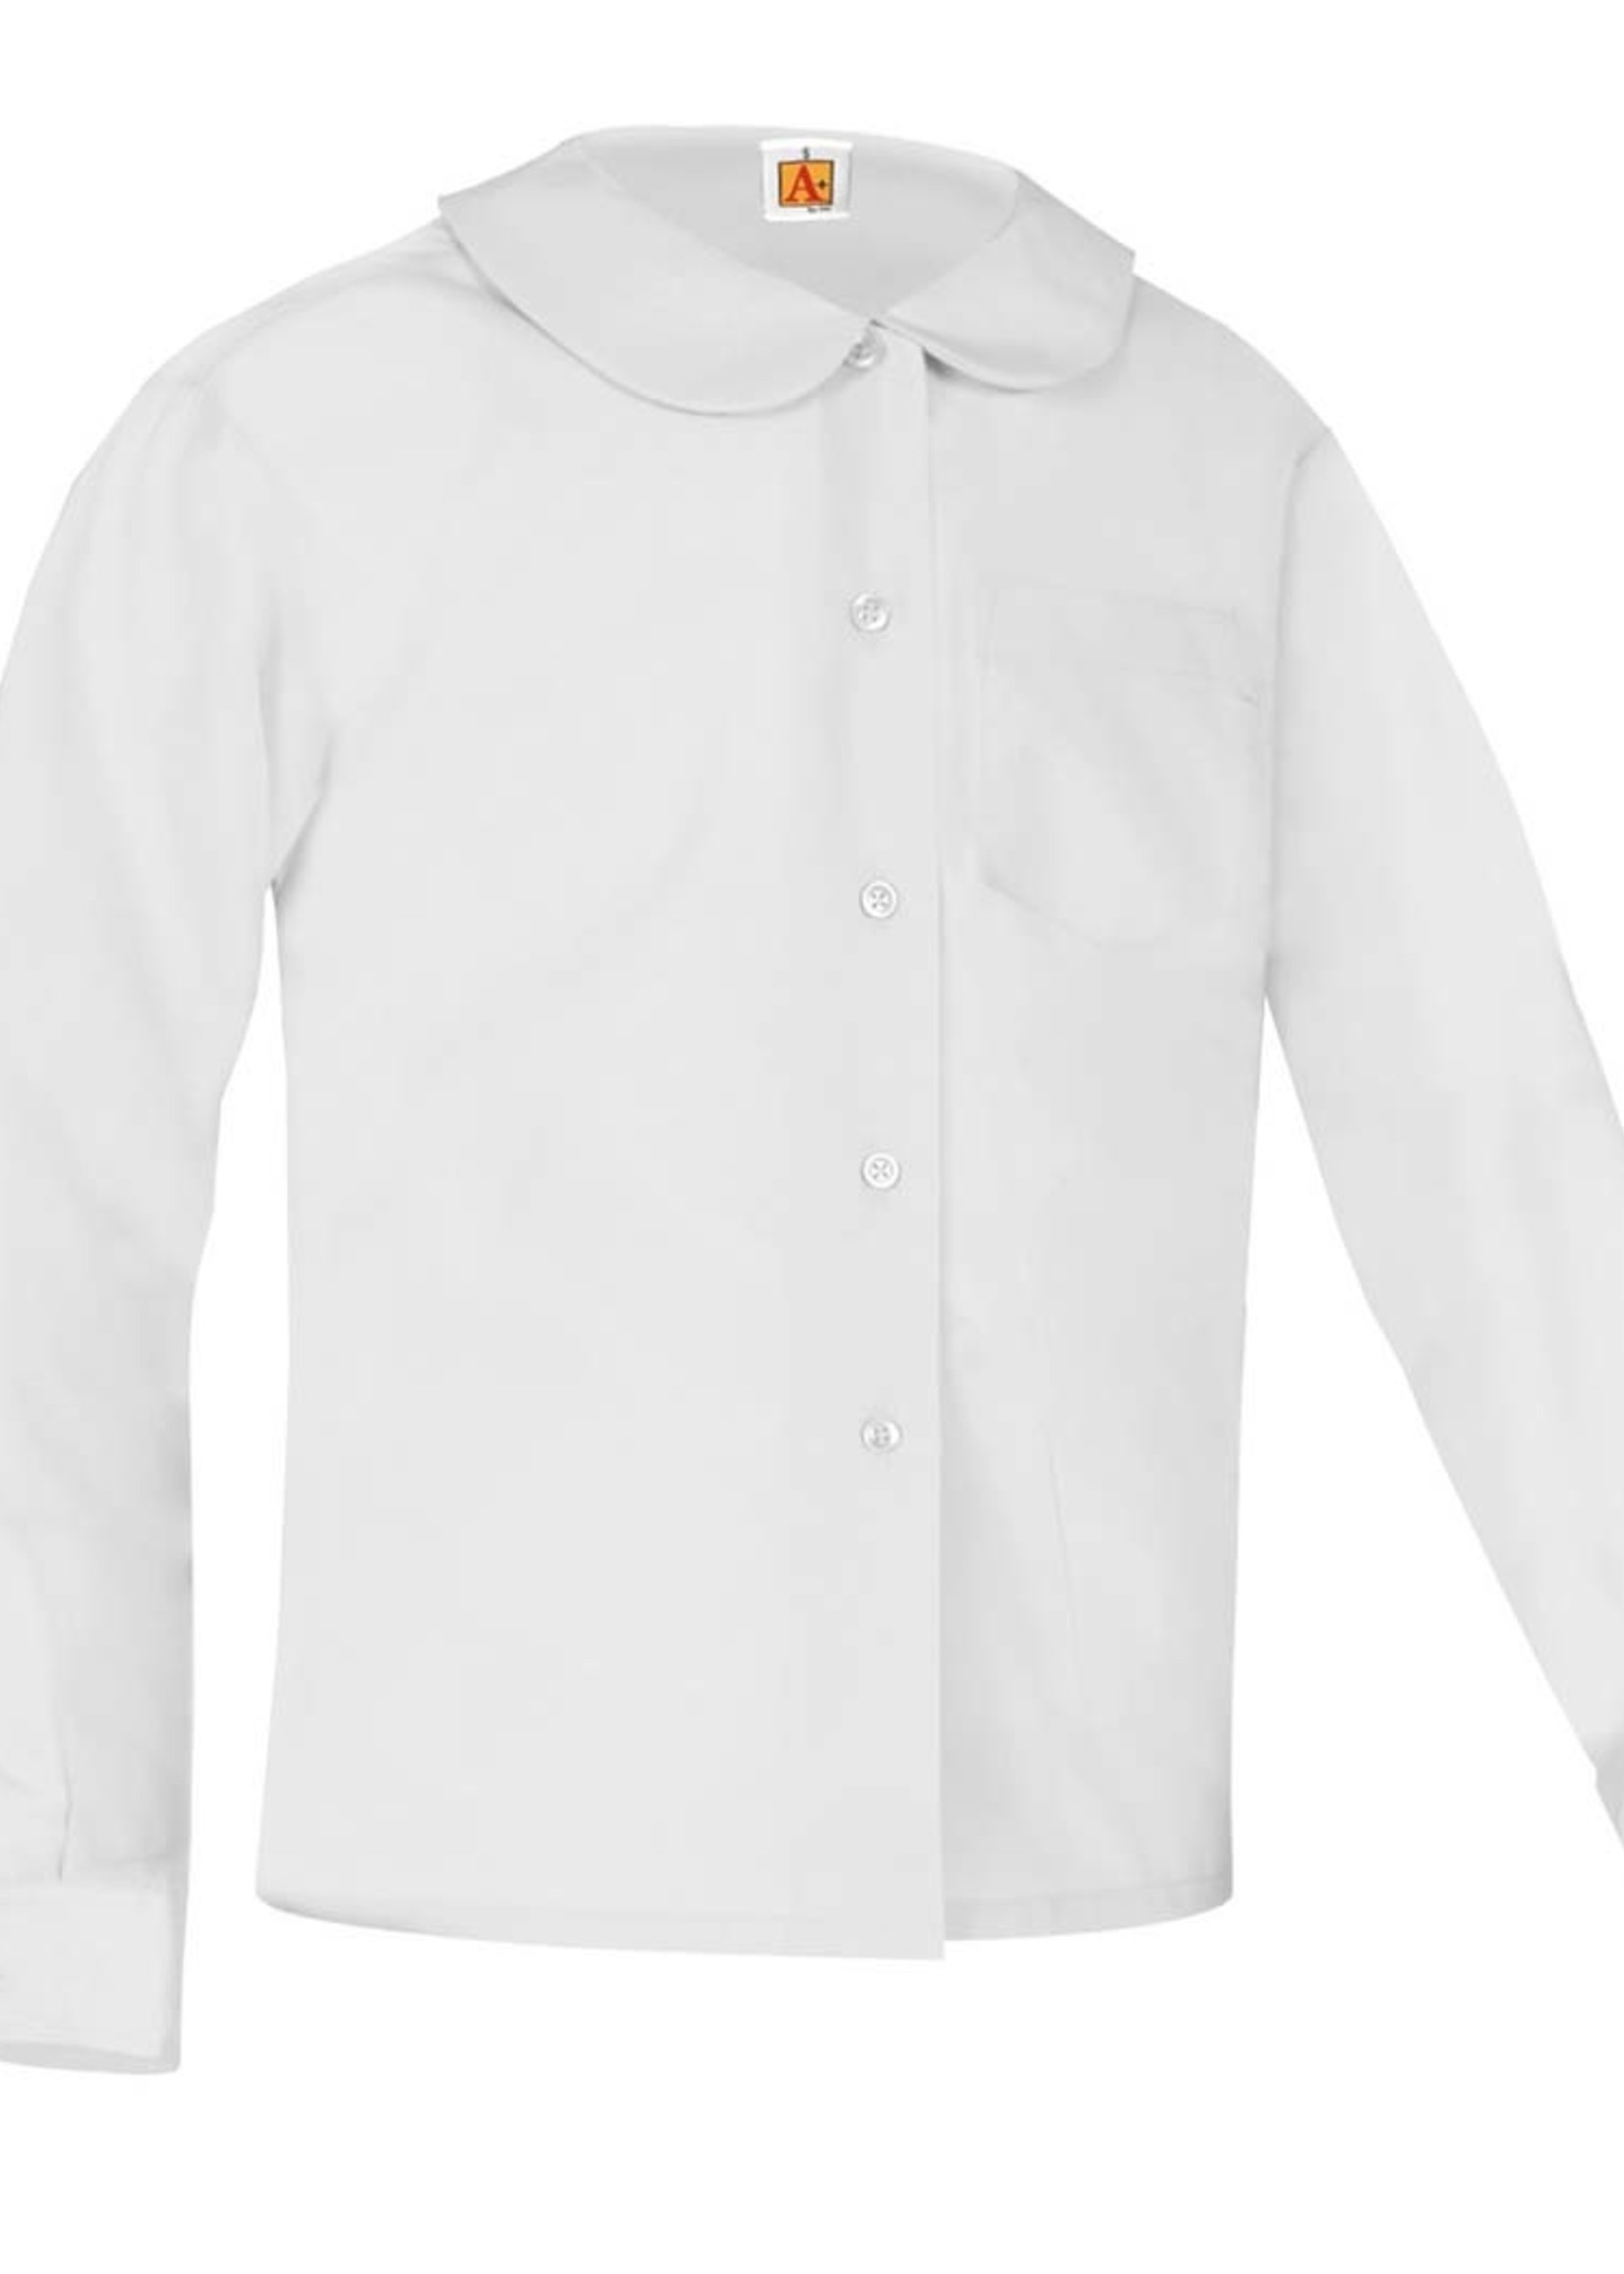 A+ White Long Sleeve Peter Pan Blouse w/o Pocket (Jumper Only)